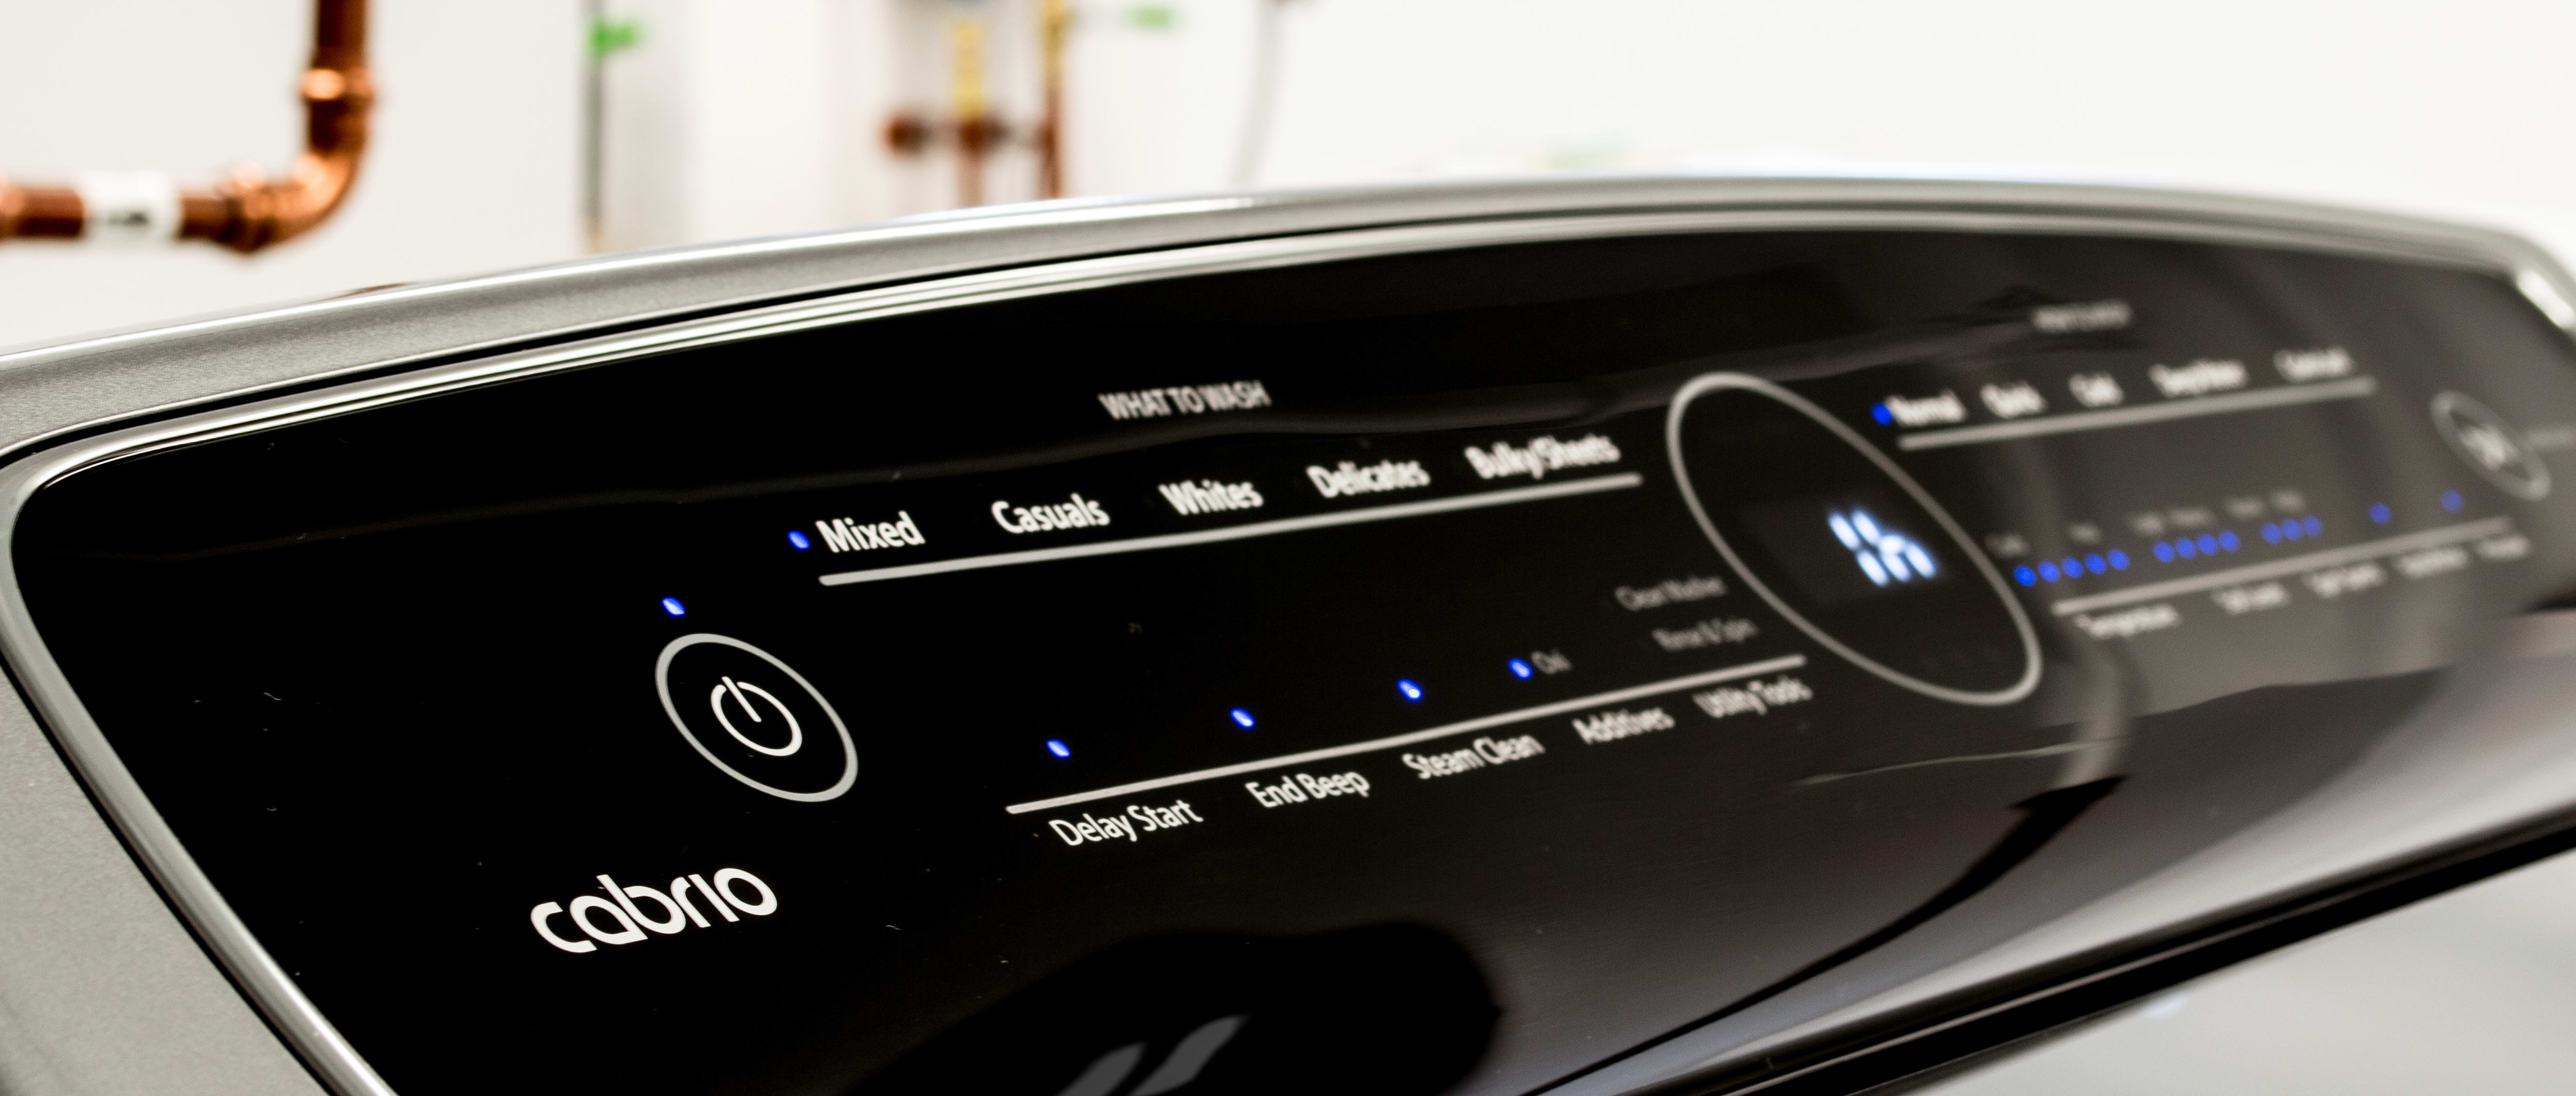 The intuitive touch controls separate the control panel into what to wash and how to wash.